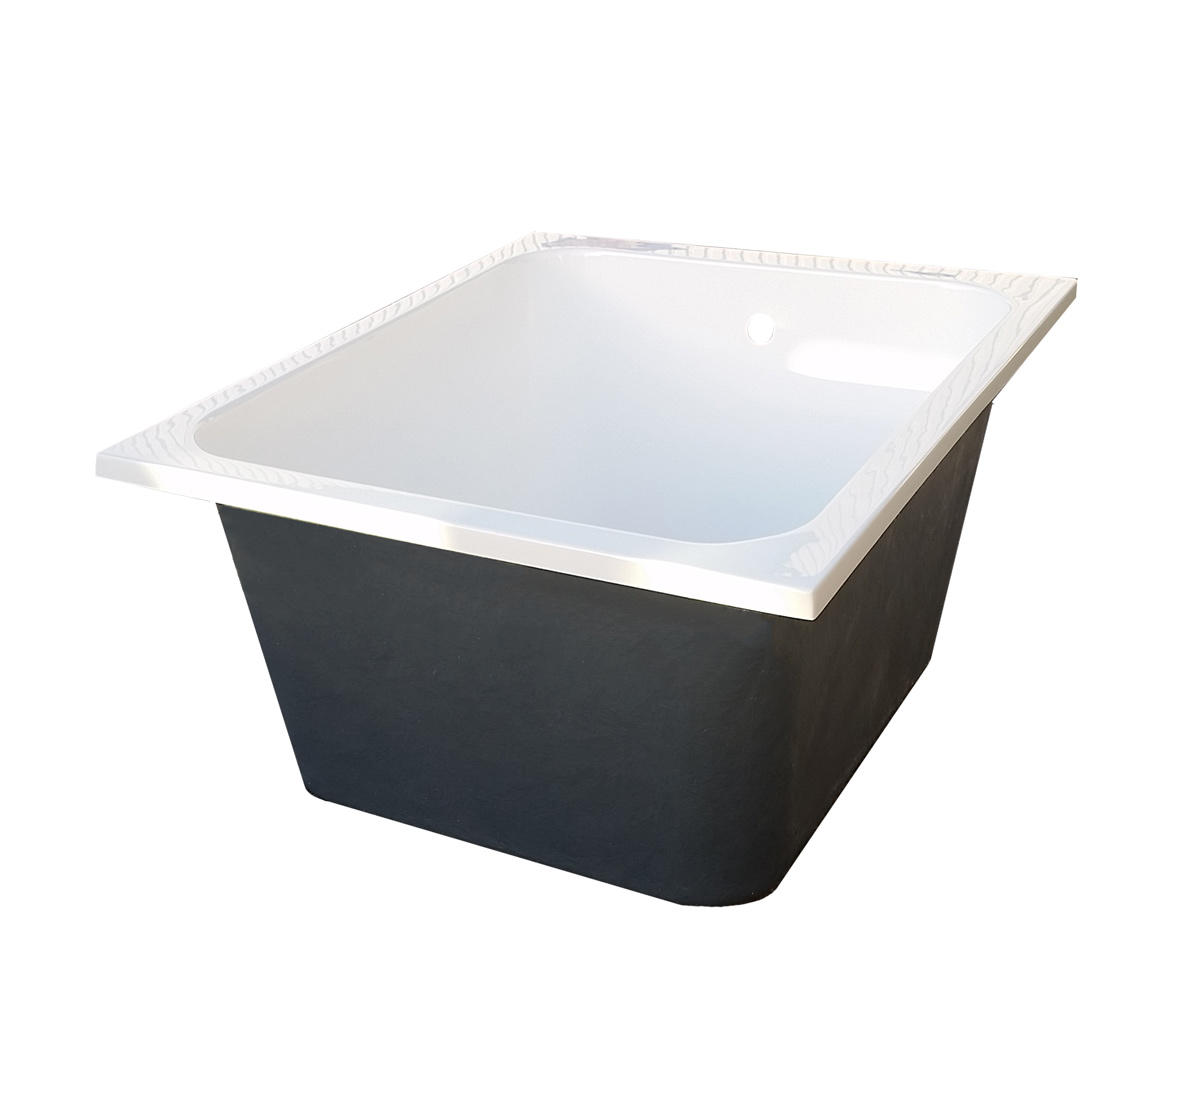 24 jet oriental deep soaking japanese soaking tub for How deep is a normal bathtub